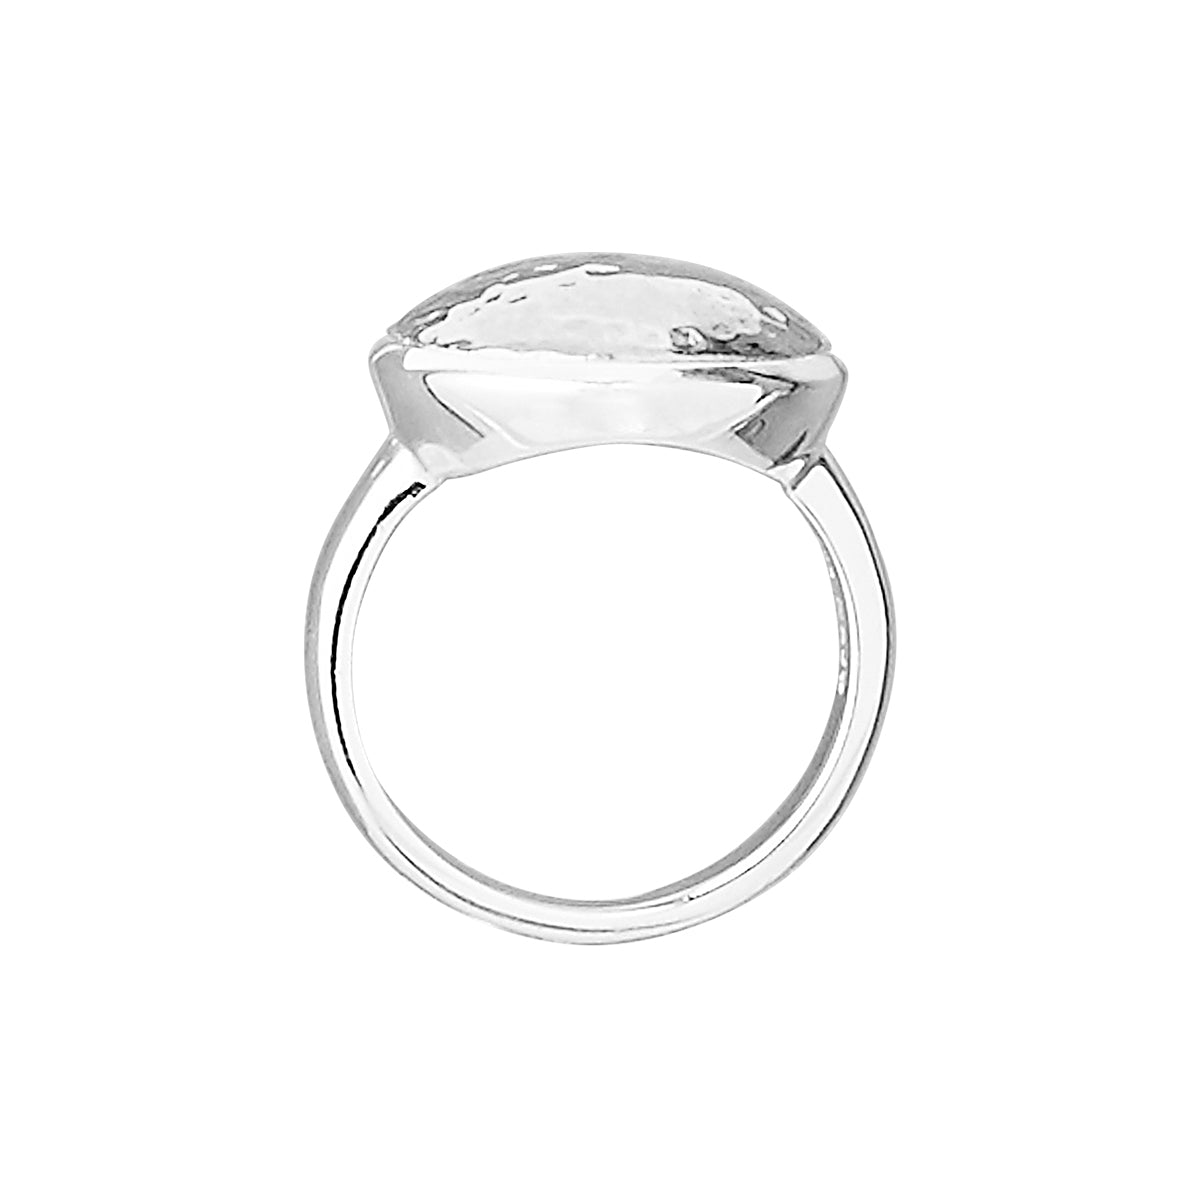 Grand Silver Glow Ring